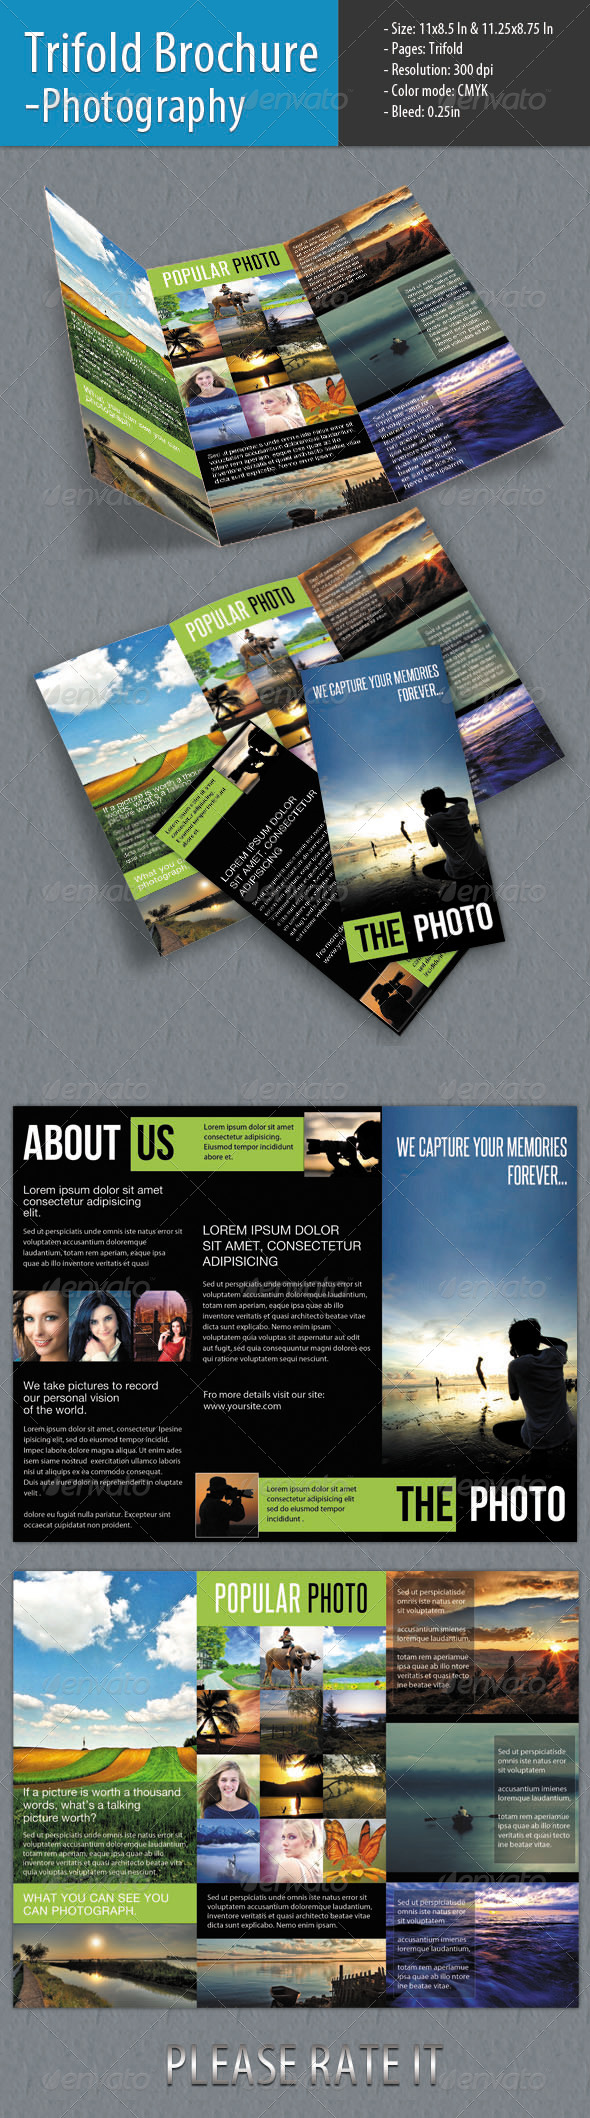 GraphicRiver Trifold Brochure For Photography 4320165